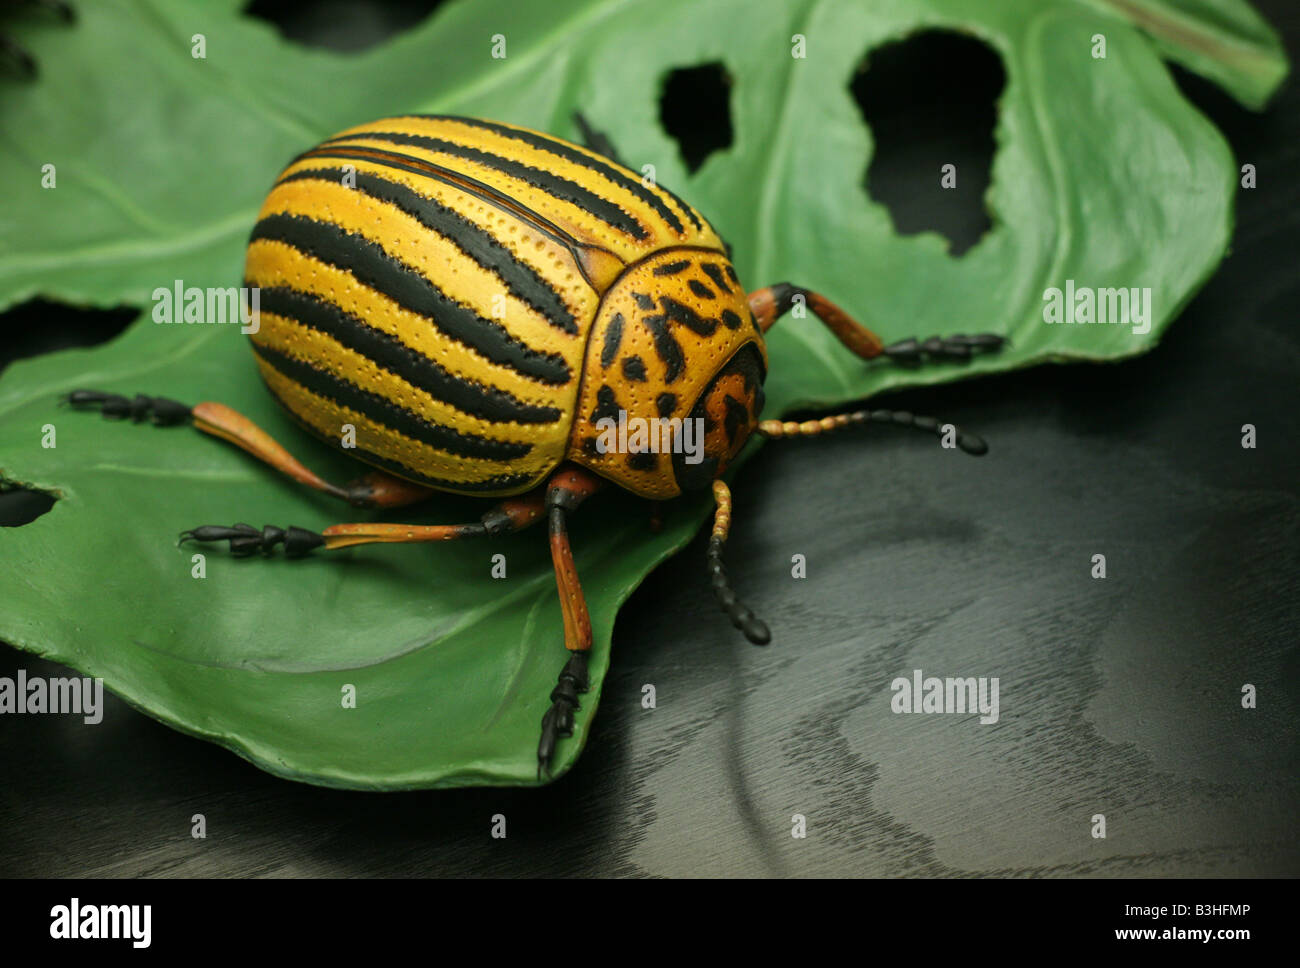 Scale model of a Colorado potato beetle (Leptinotarsa decemlineata) in the Humboldt Museum fur Naturkunde in Berlin, Stock Photo